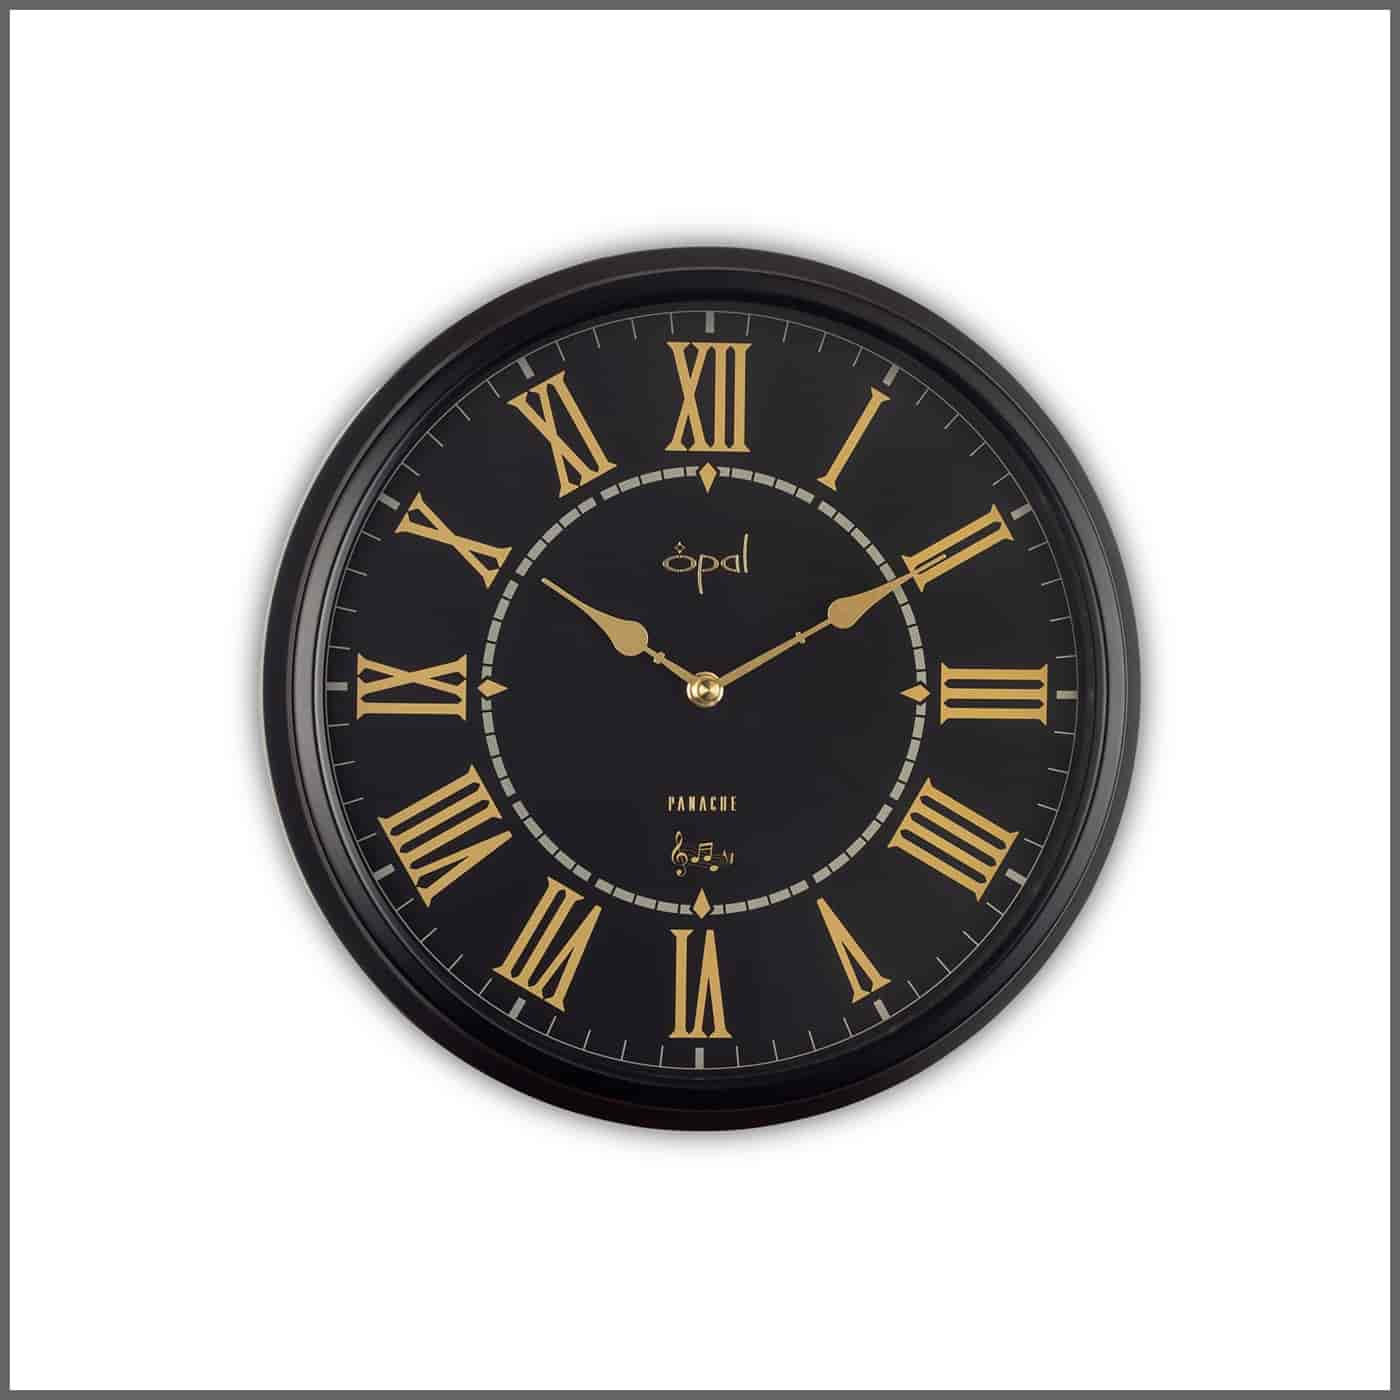 Opal wall clocks review 12000 wall clocks opal panache wall clock 5283bk amipublicfo Choice Image